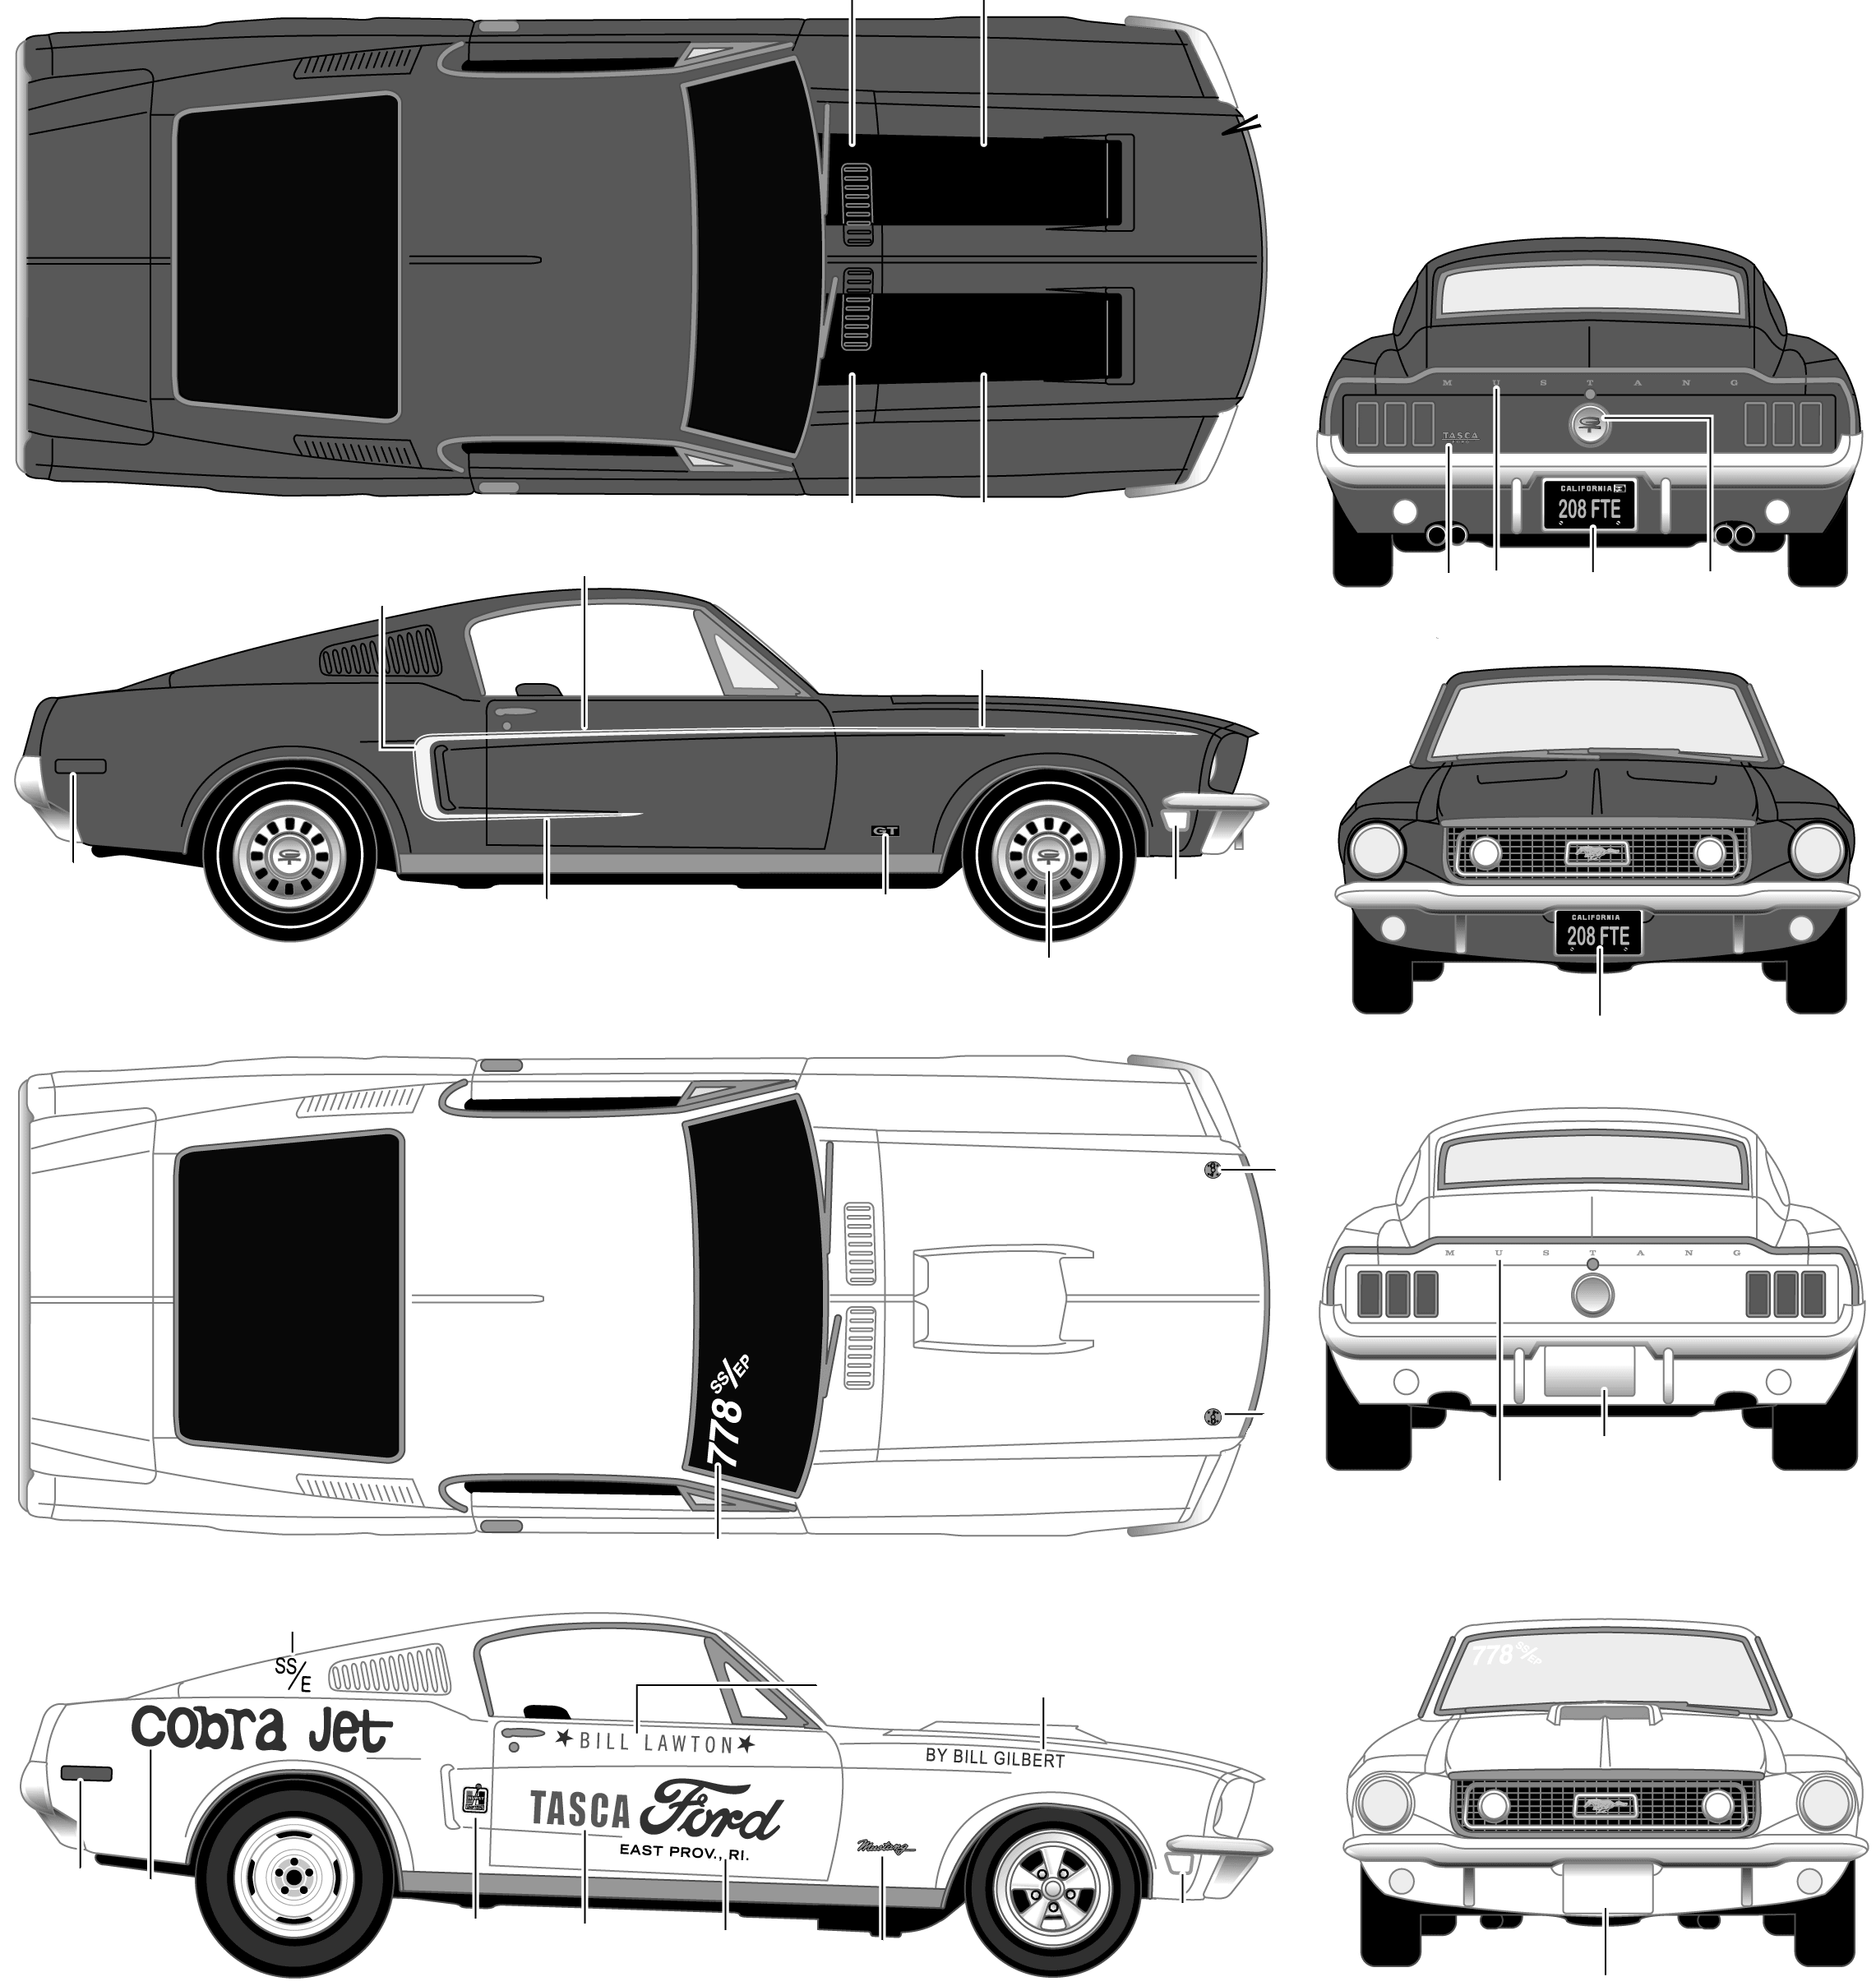 1968 ford mustang gt coupe blueprints free outlines ford mustang gt blueprints malvernweather Images